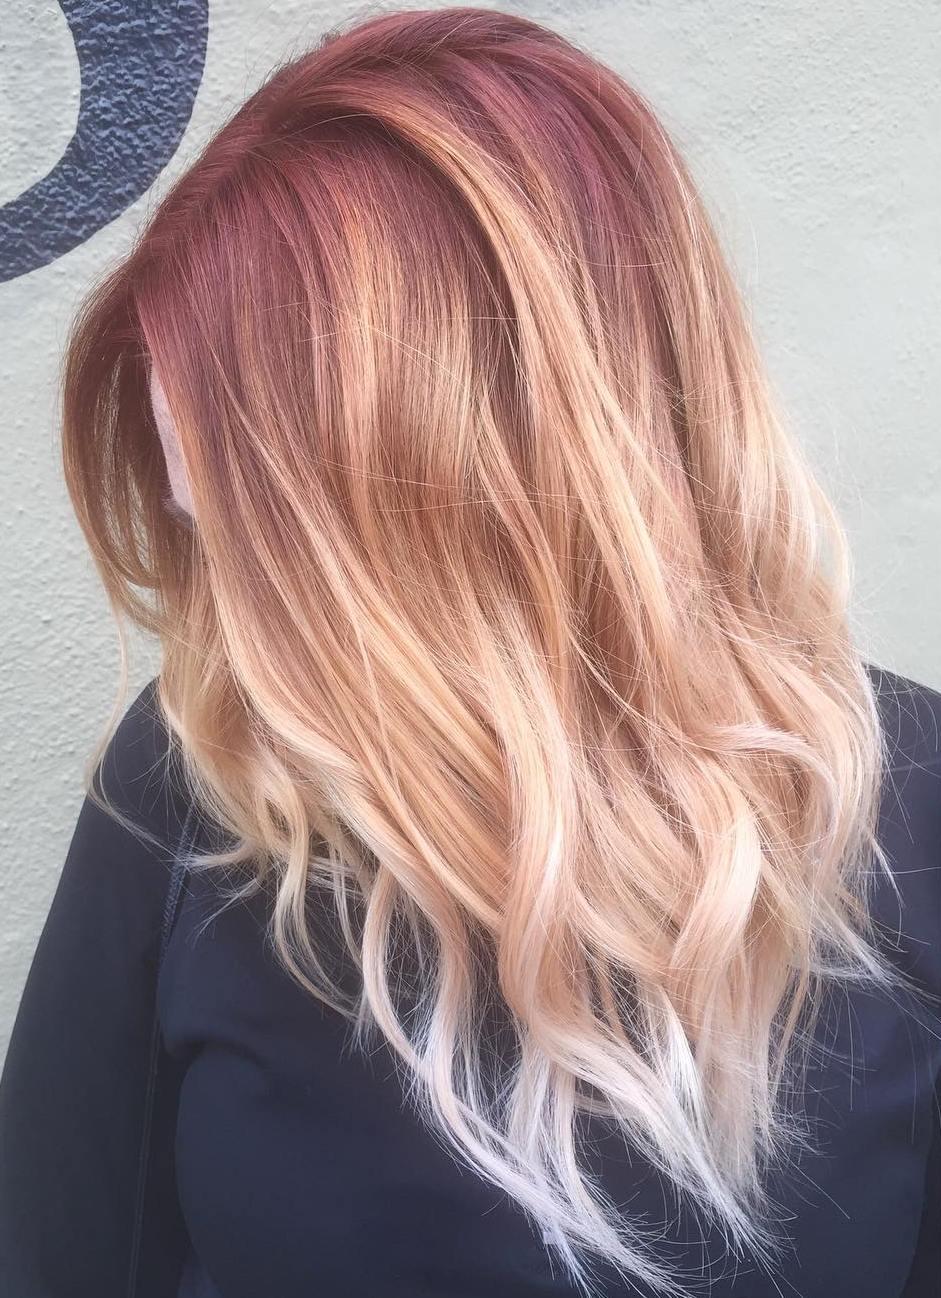 Astounding 60 Best Ombre Hair Color Ideas For Blond Brown Red And Black Hair Hairstyles For Women Draintrainus